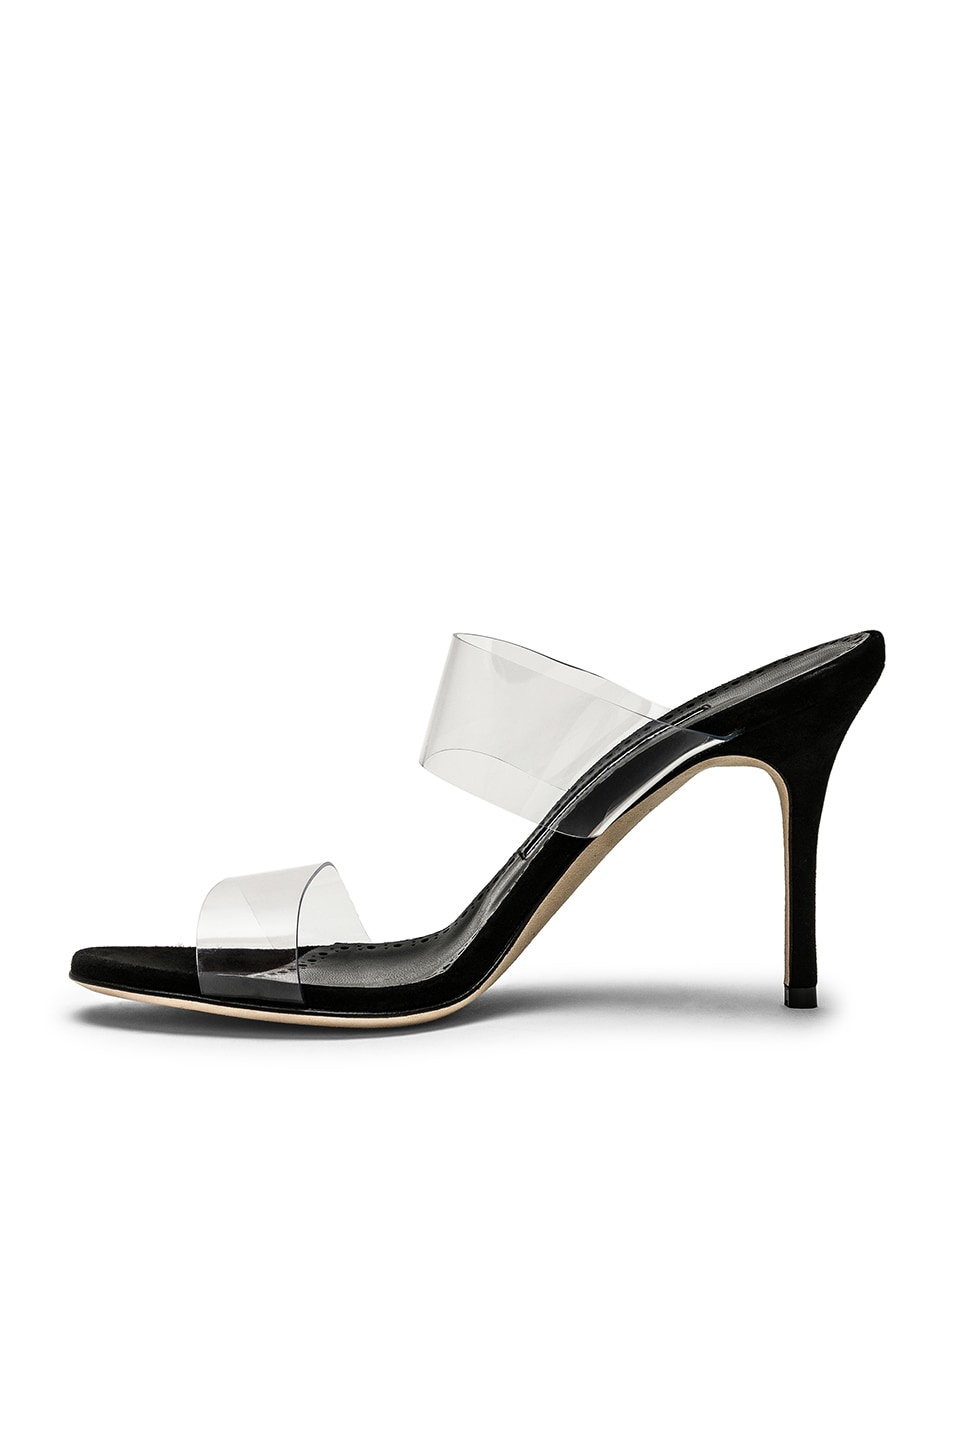 Image 5 of Manolo Blahnik PVC Scolto 90 Sandal in Black